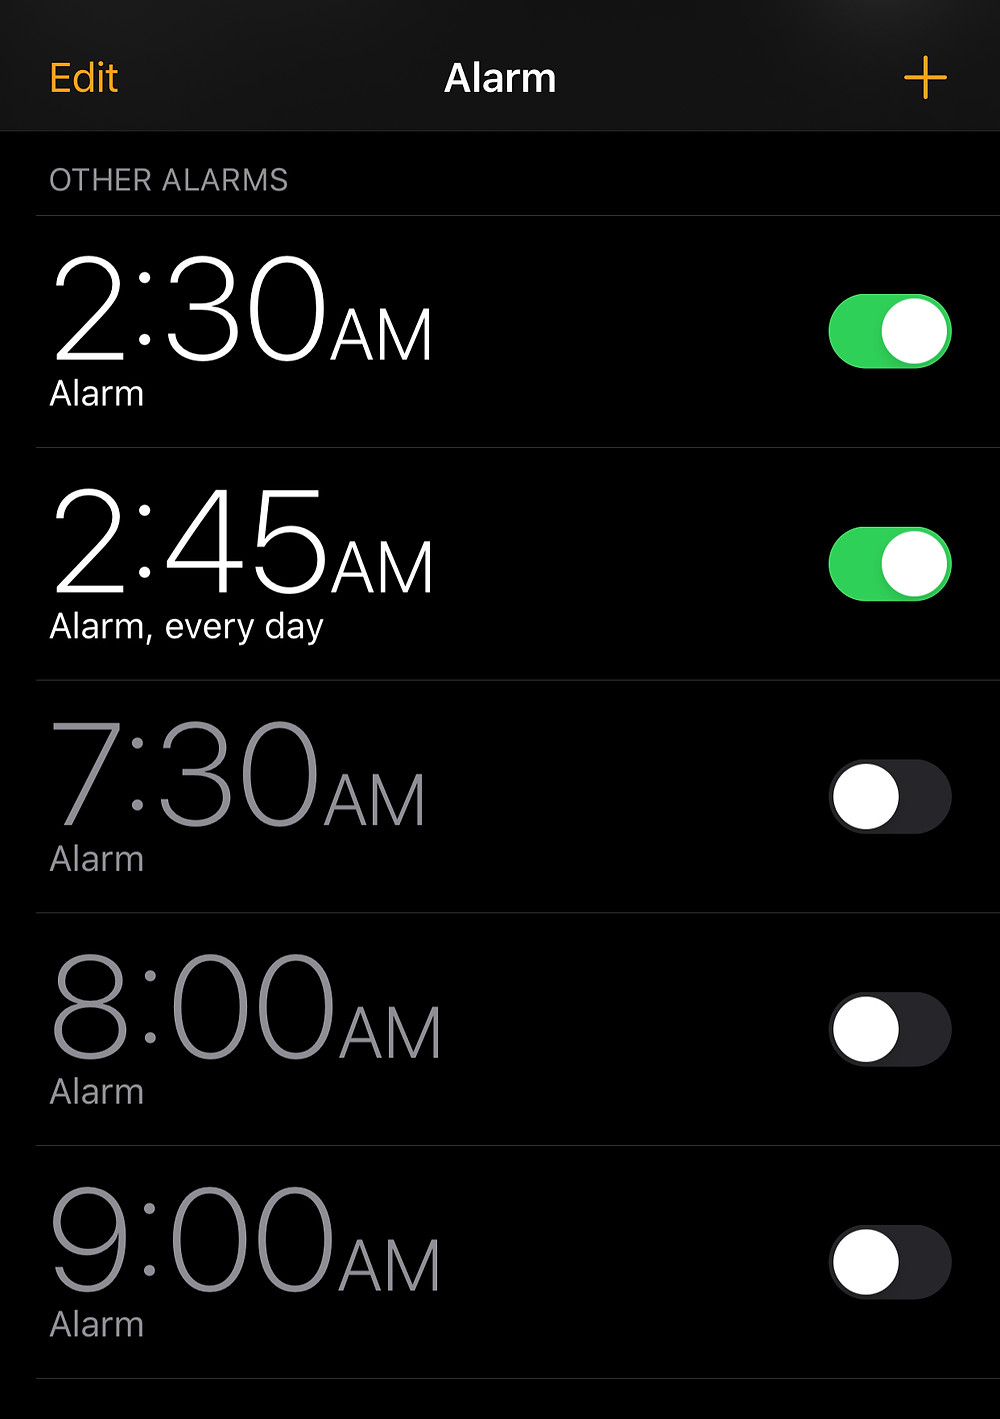 iPhone Alarms 2AM and 3AM